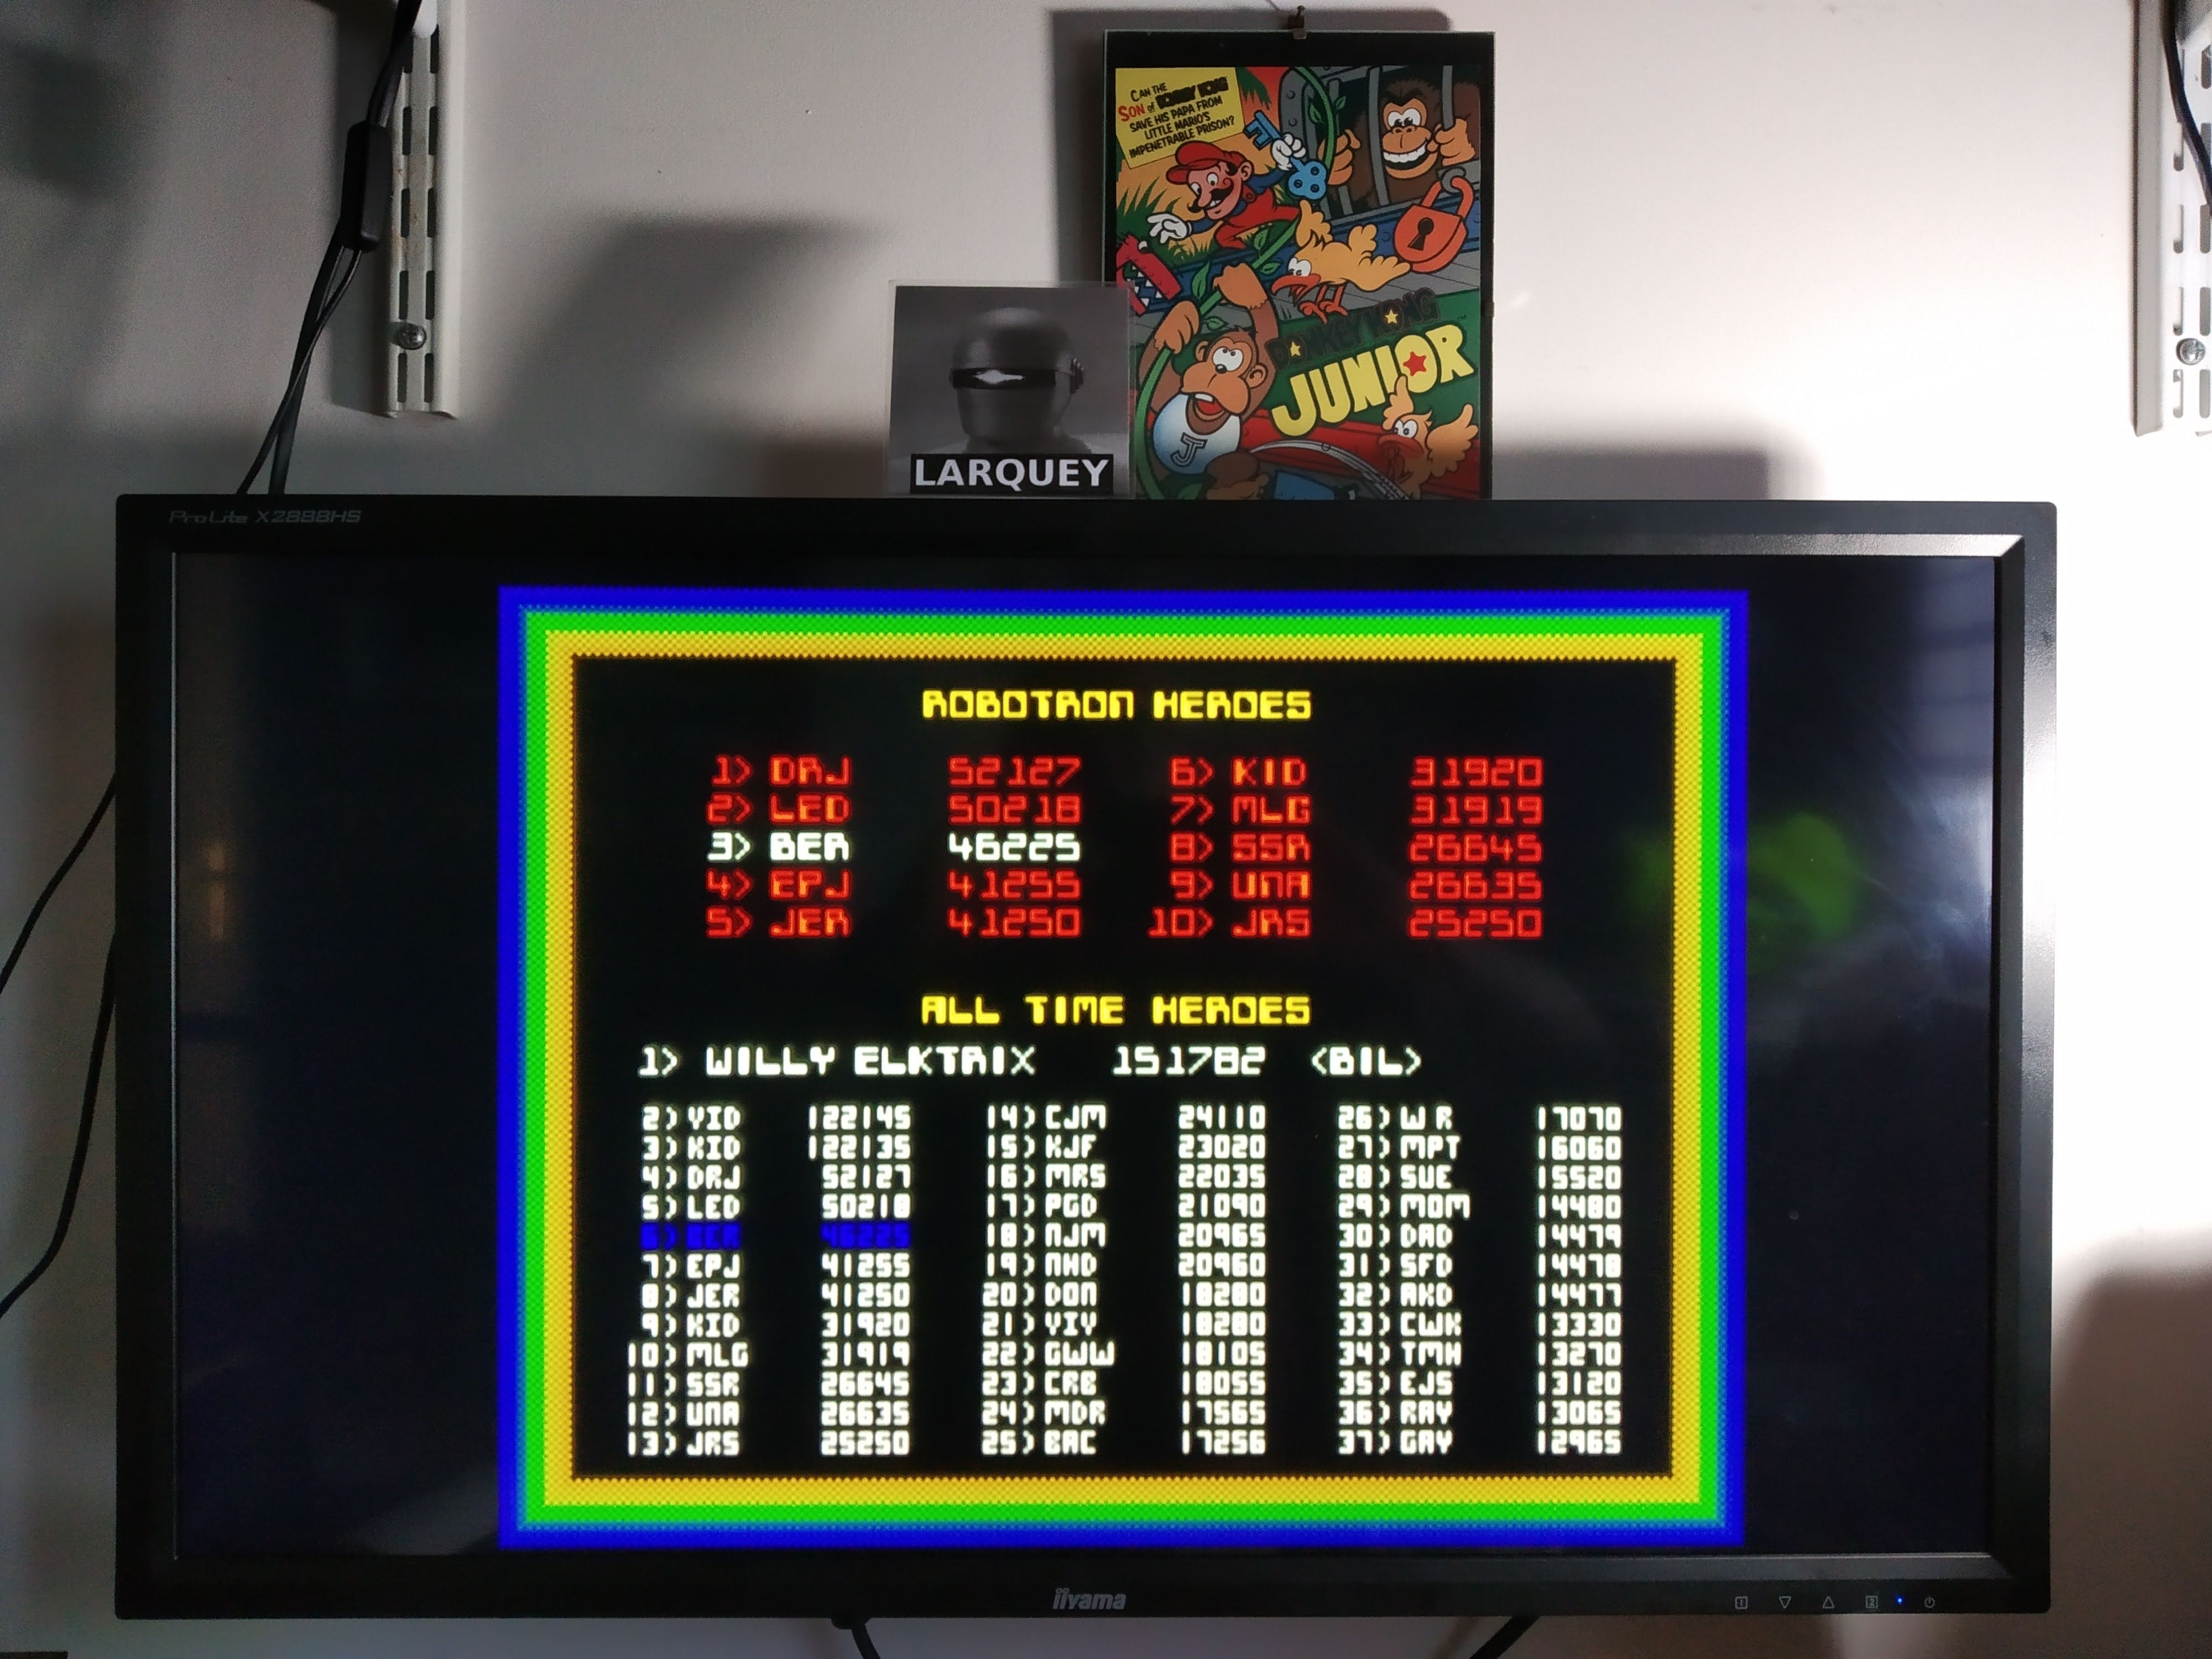 Larquey: Midway Arcade Treasures: Robotron 2084 (Playstation 2 Emulated) 46,225 points on 2020-08-02 07:06:23